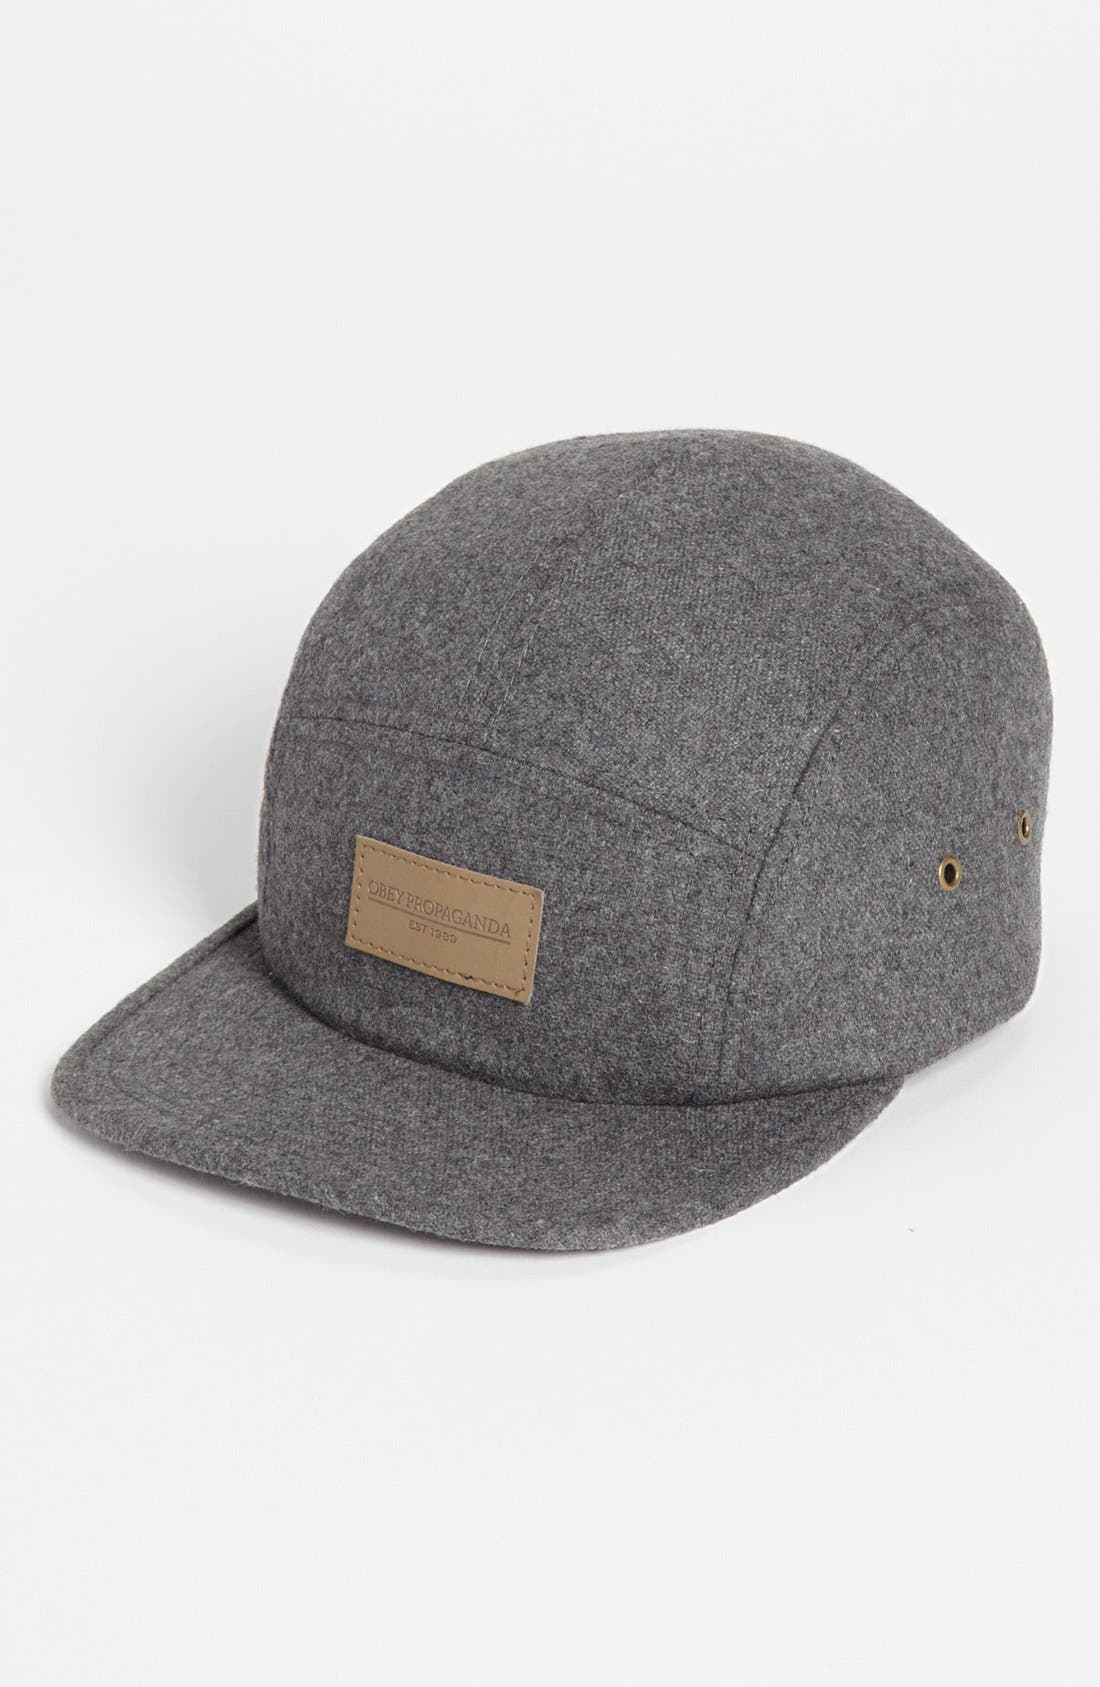 OBEY, 'Northern' Wool Cap, Main thumbnail 1, color, 020